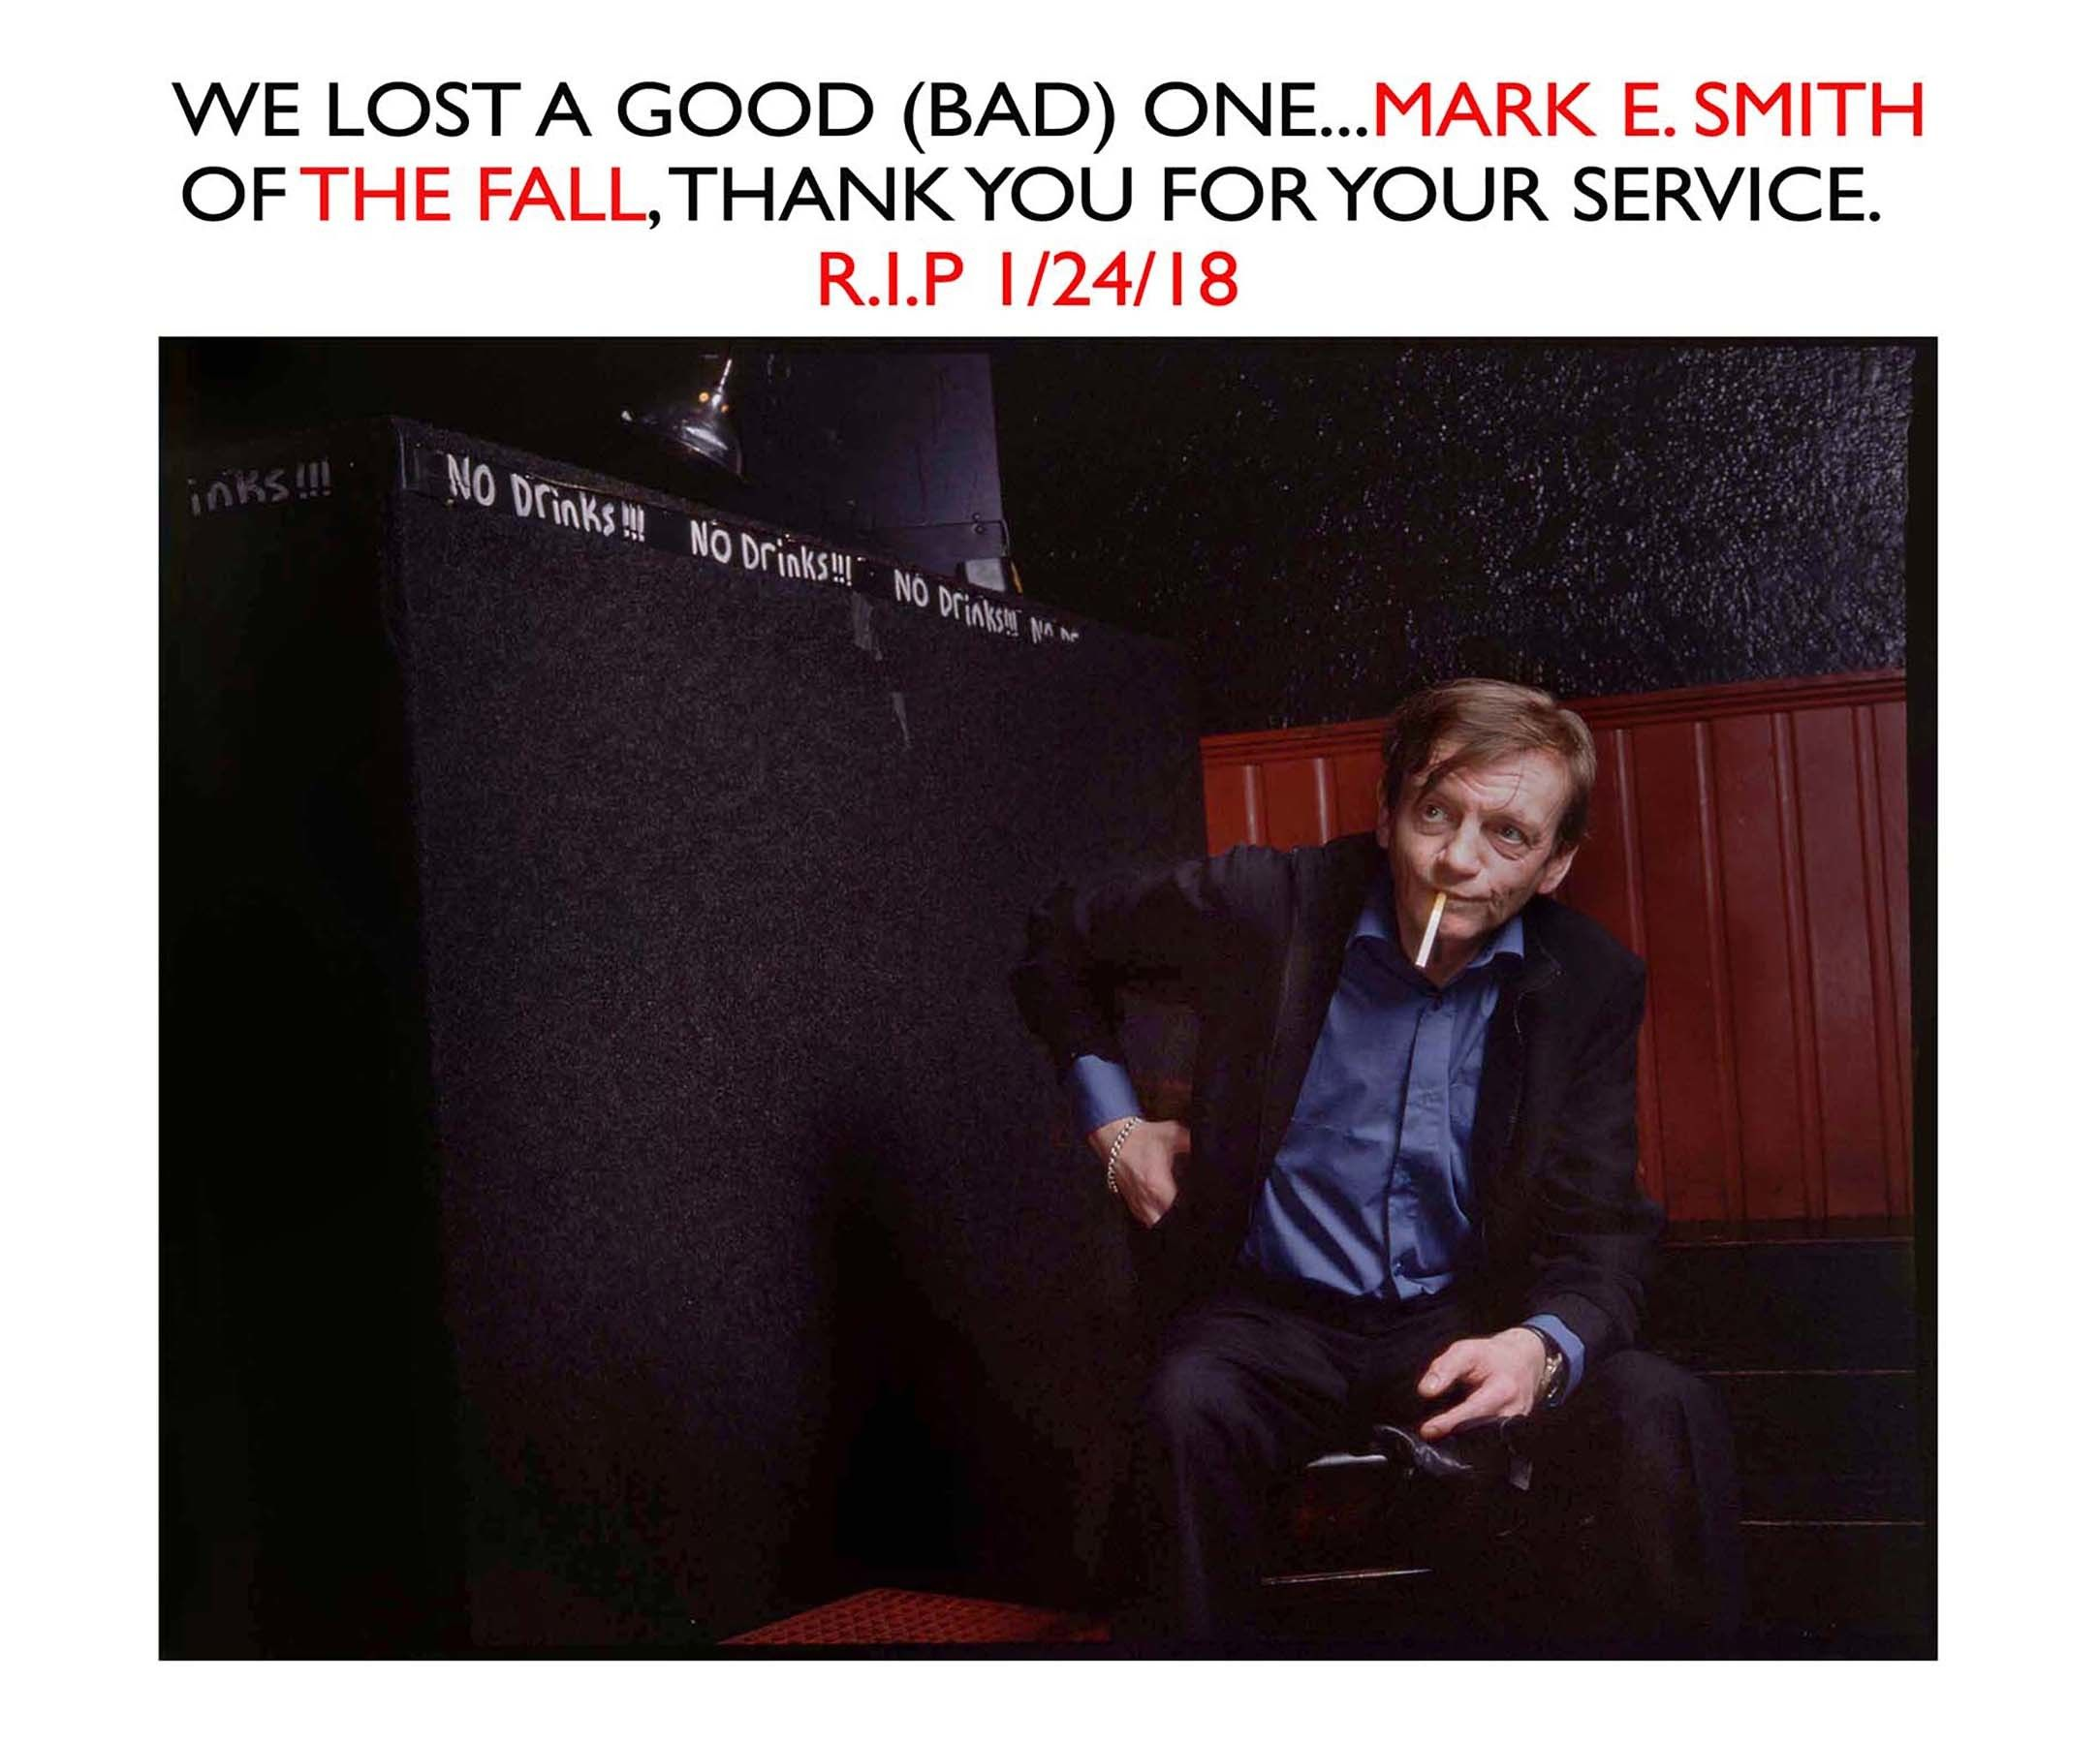 012518194011_1mark_e__smith_web_homepage.jpg